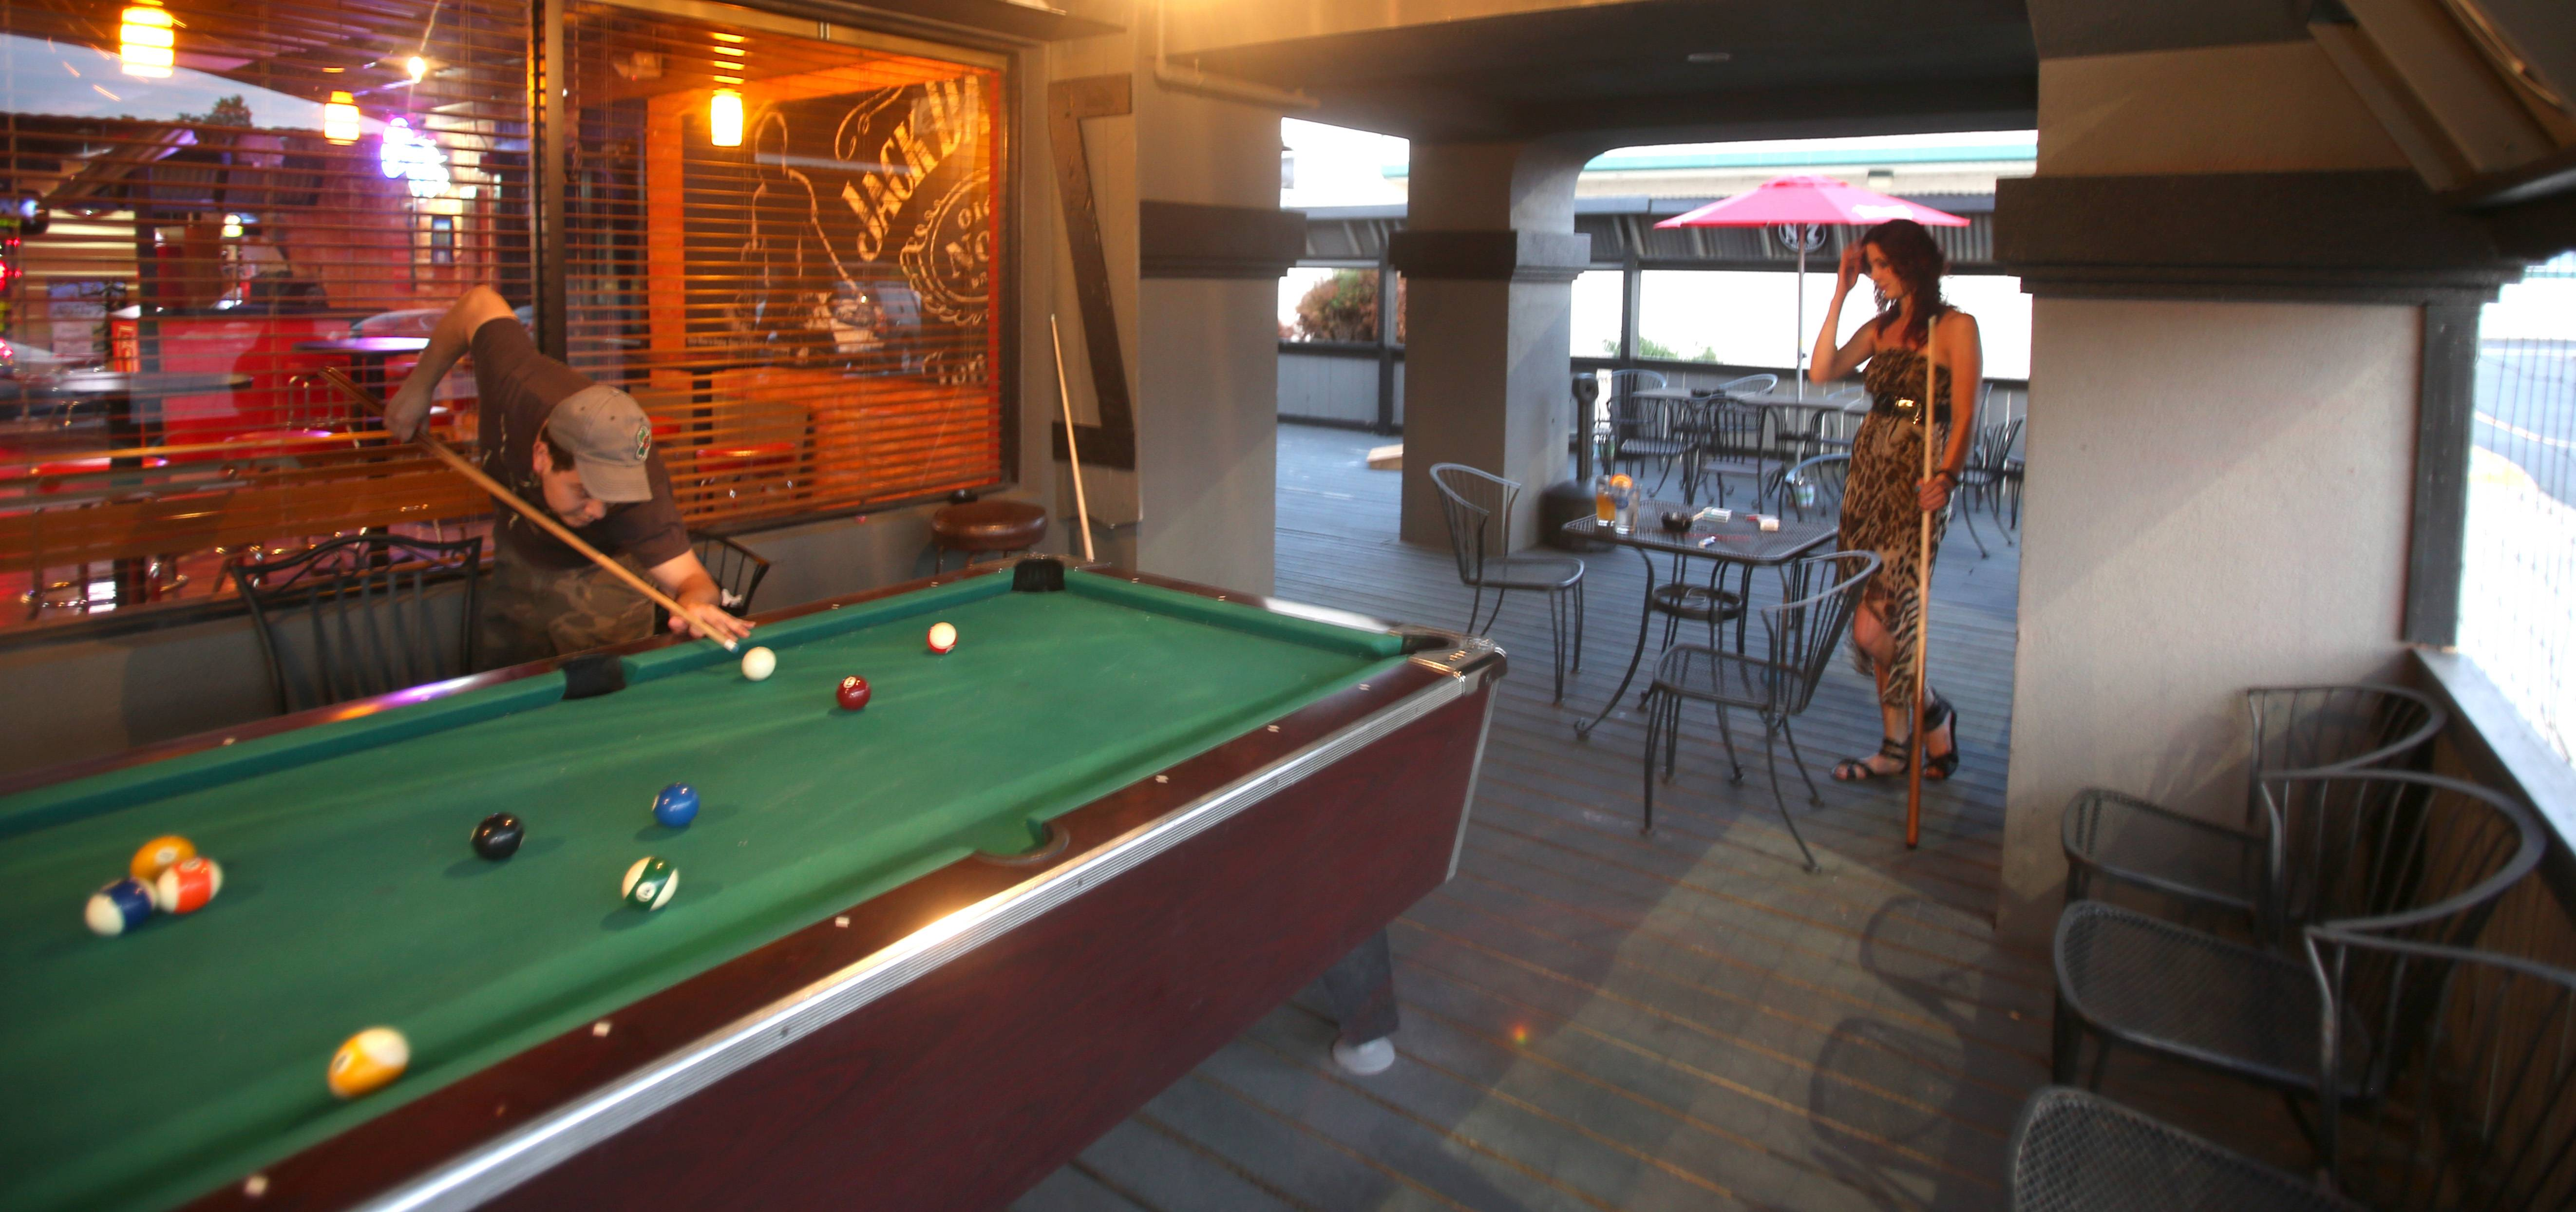 An outdoor pool table at Gnarly J's in Downers Grove attracts Eddie Torres and Jelena Lukic, both of Elk Grove Village.